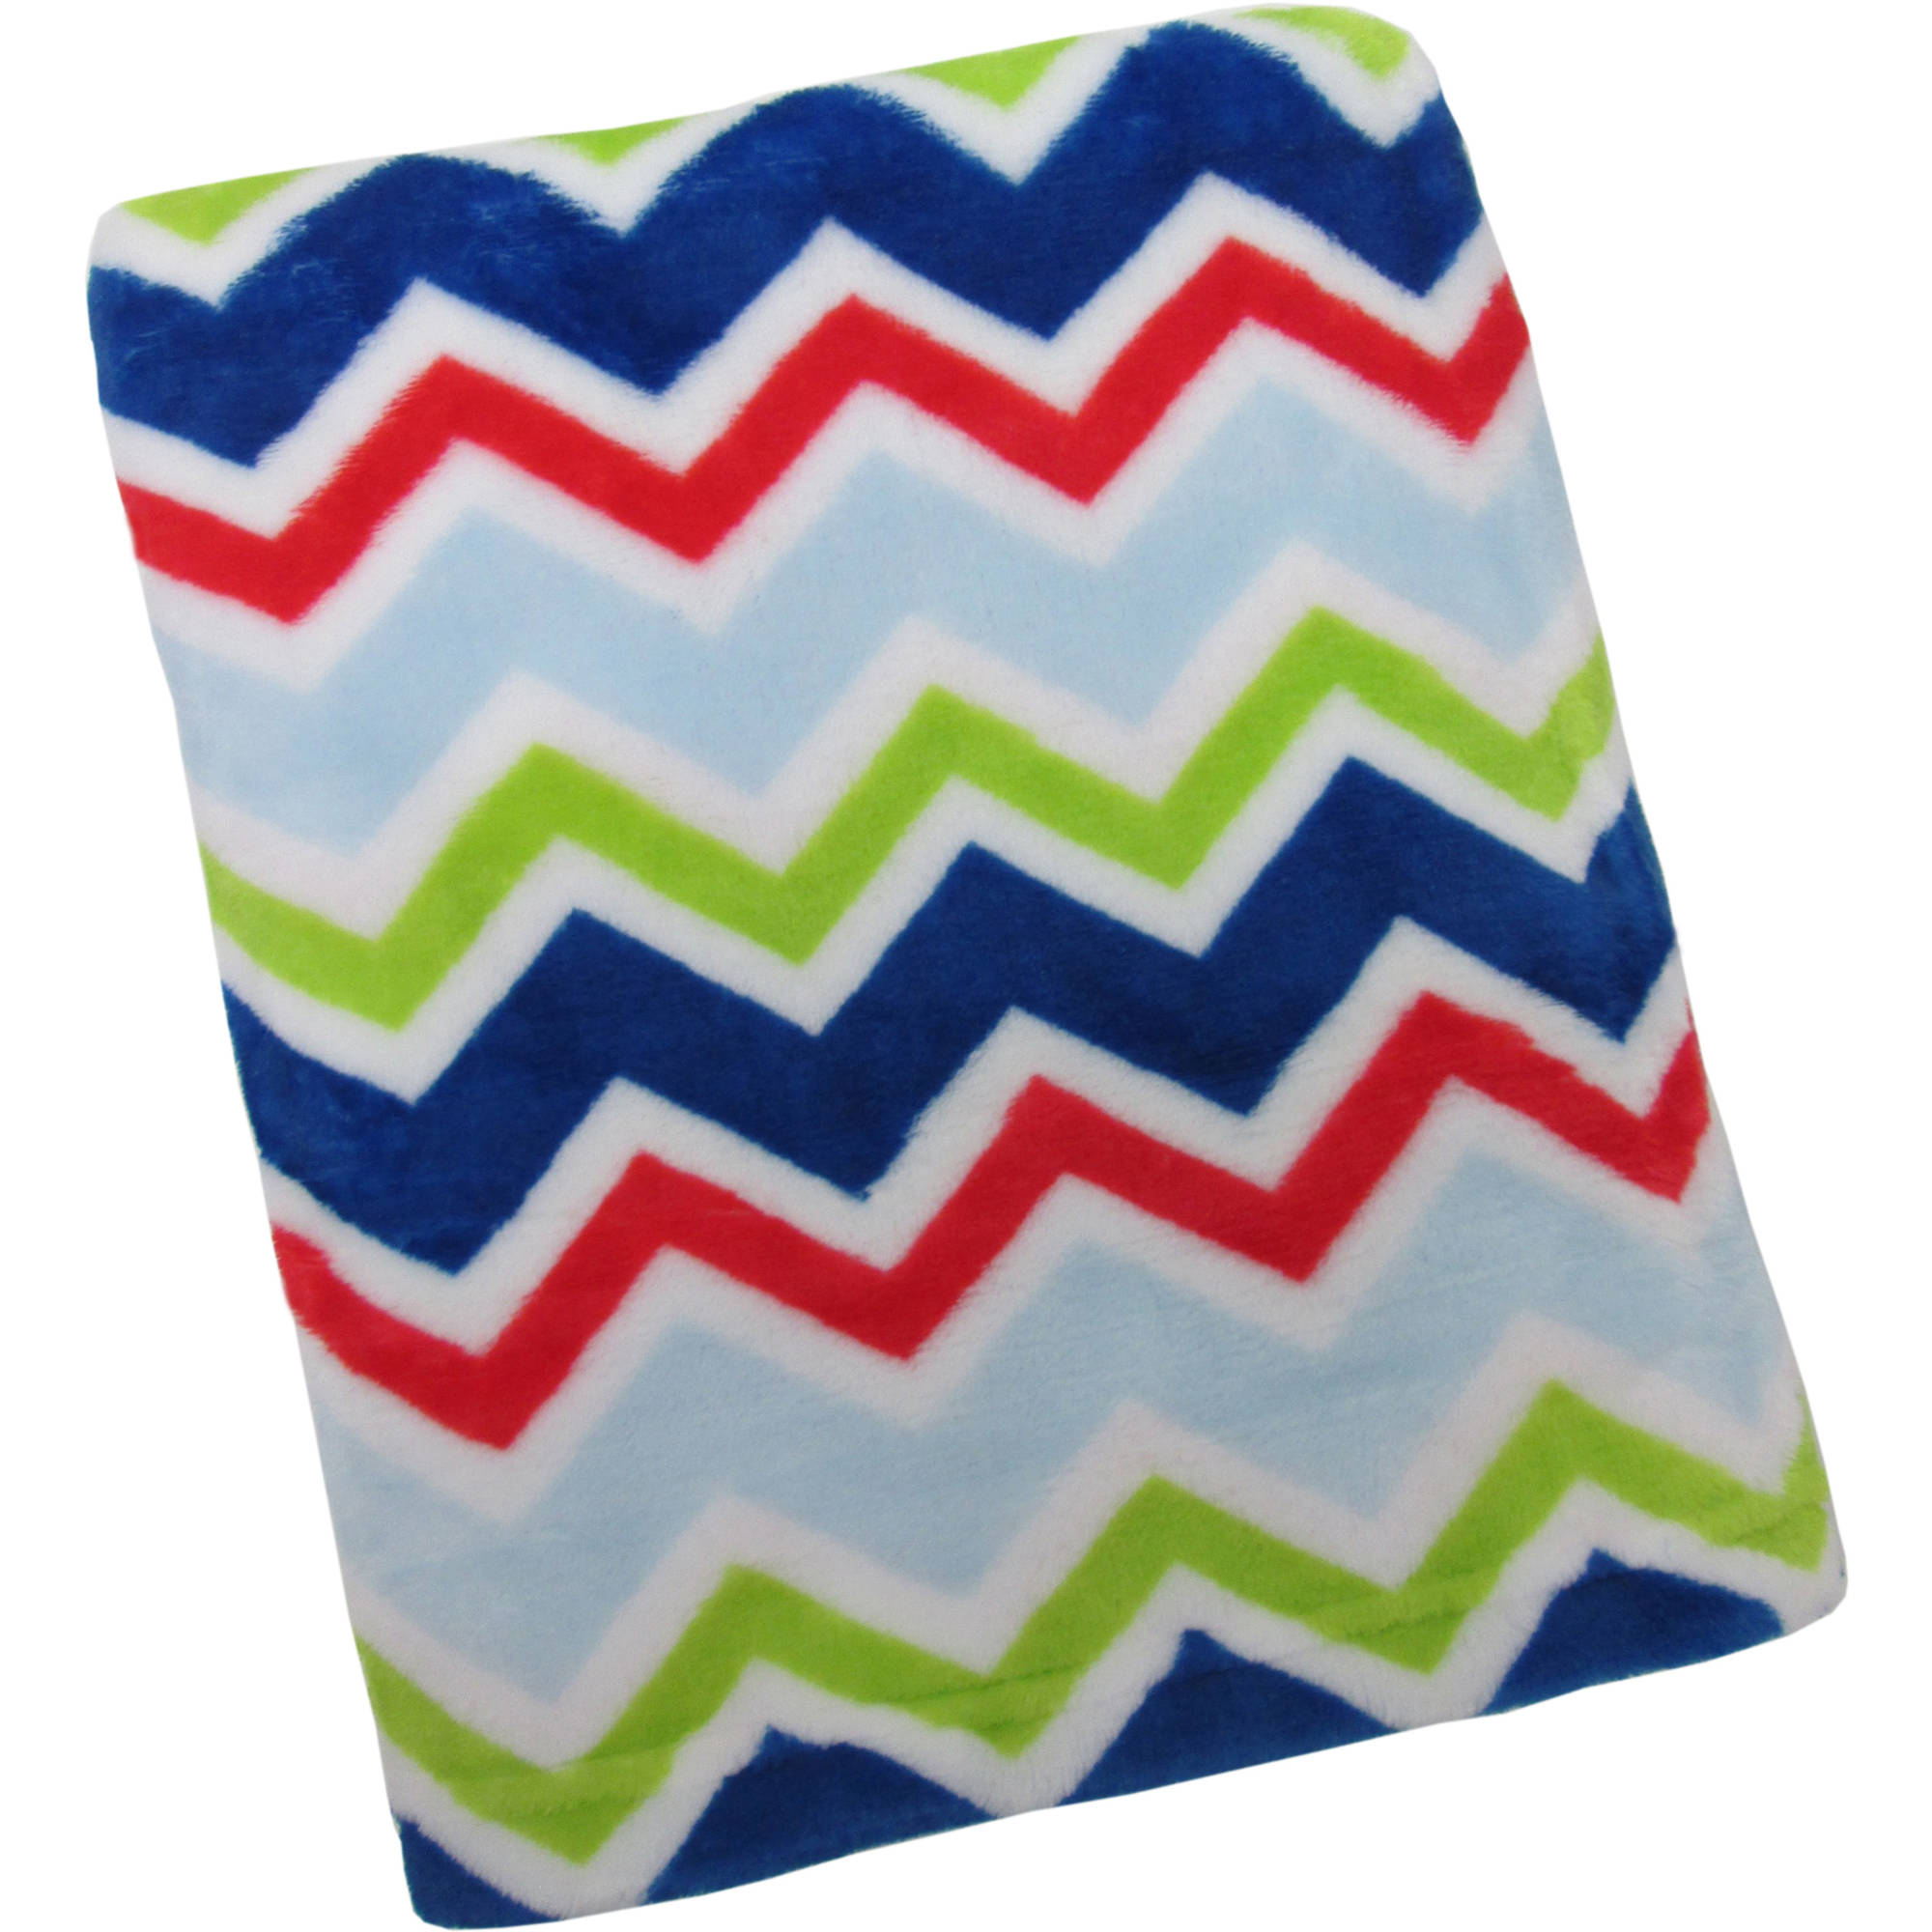 Kimberly Grant Plush Chevron Blanket, Boy